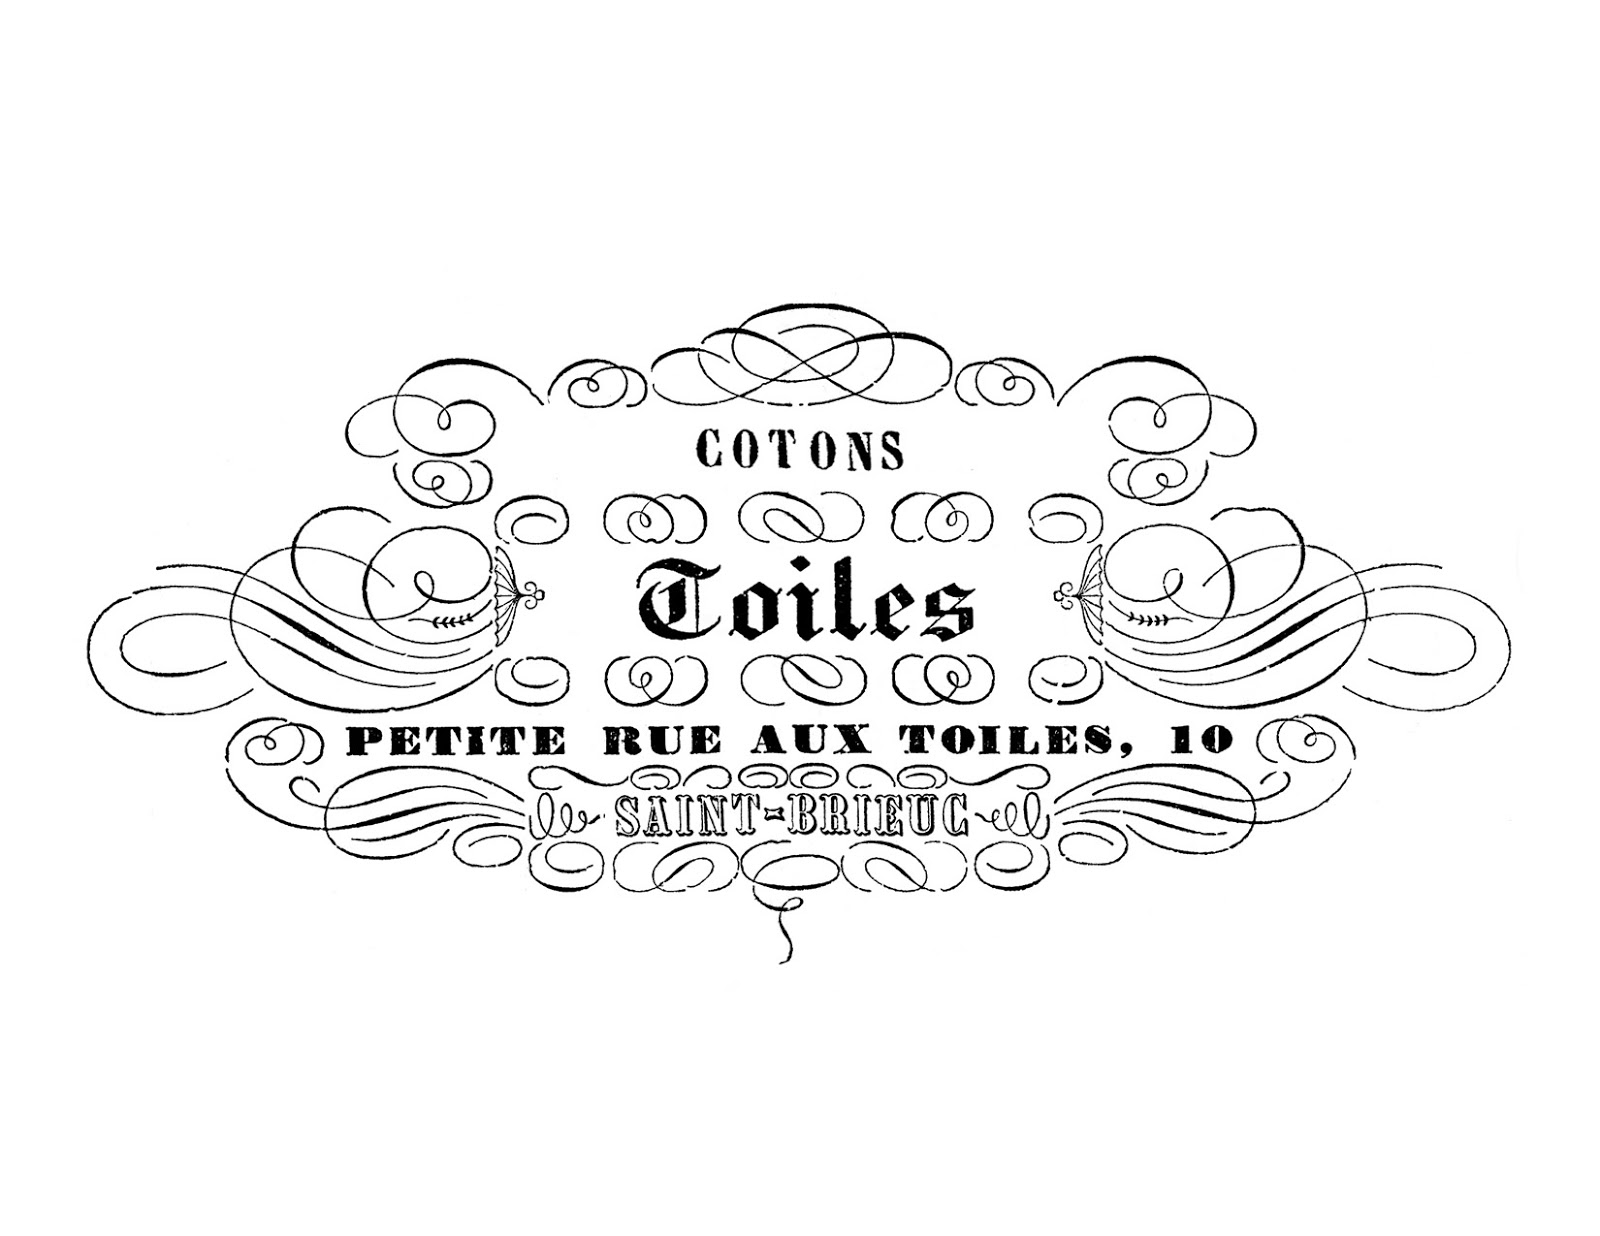 http://thegraphicsfairy.com/image-transfer-printable-french-toiles/